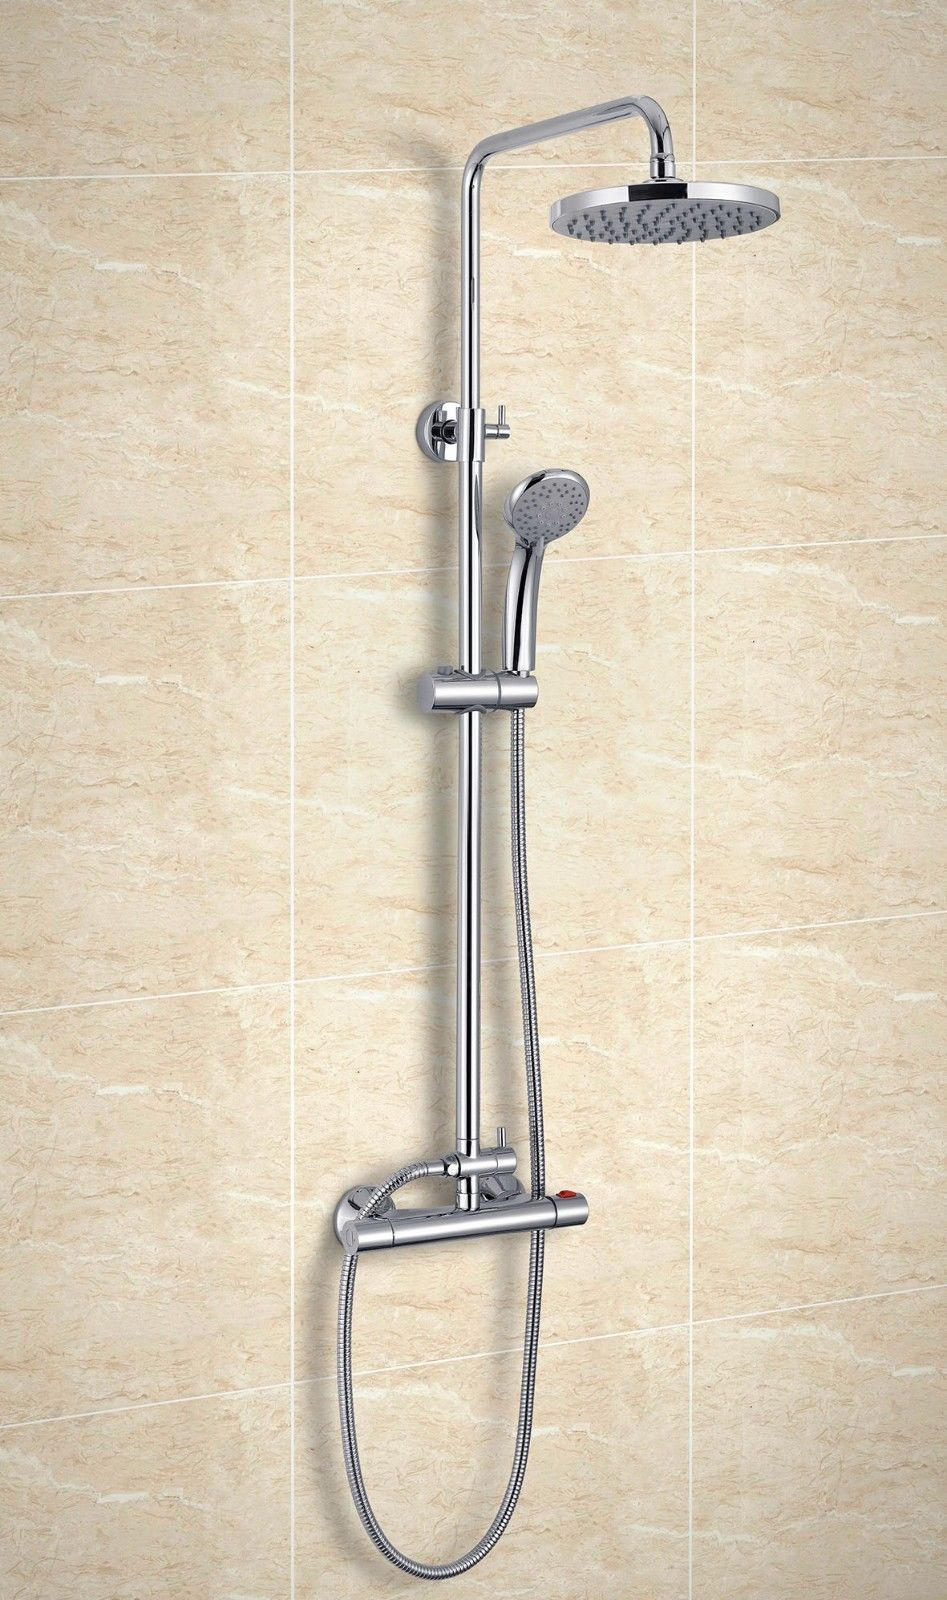 Thermostatic Bar Mixer Valve Shower Kit Dual Head Shower Set Rain Head  Modern